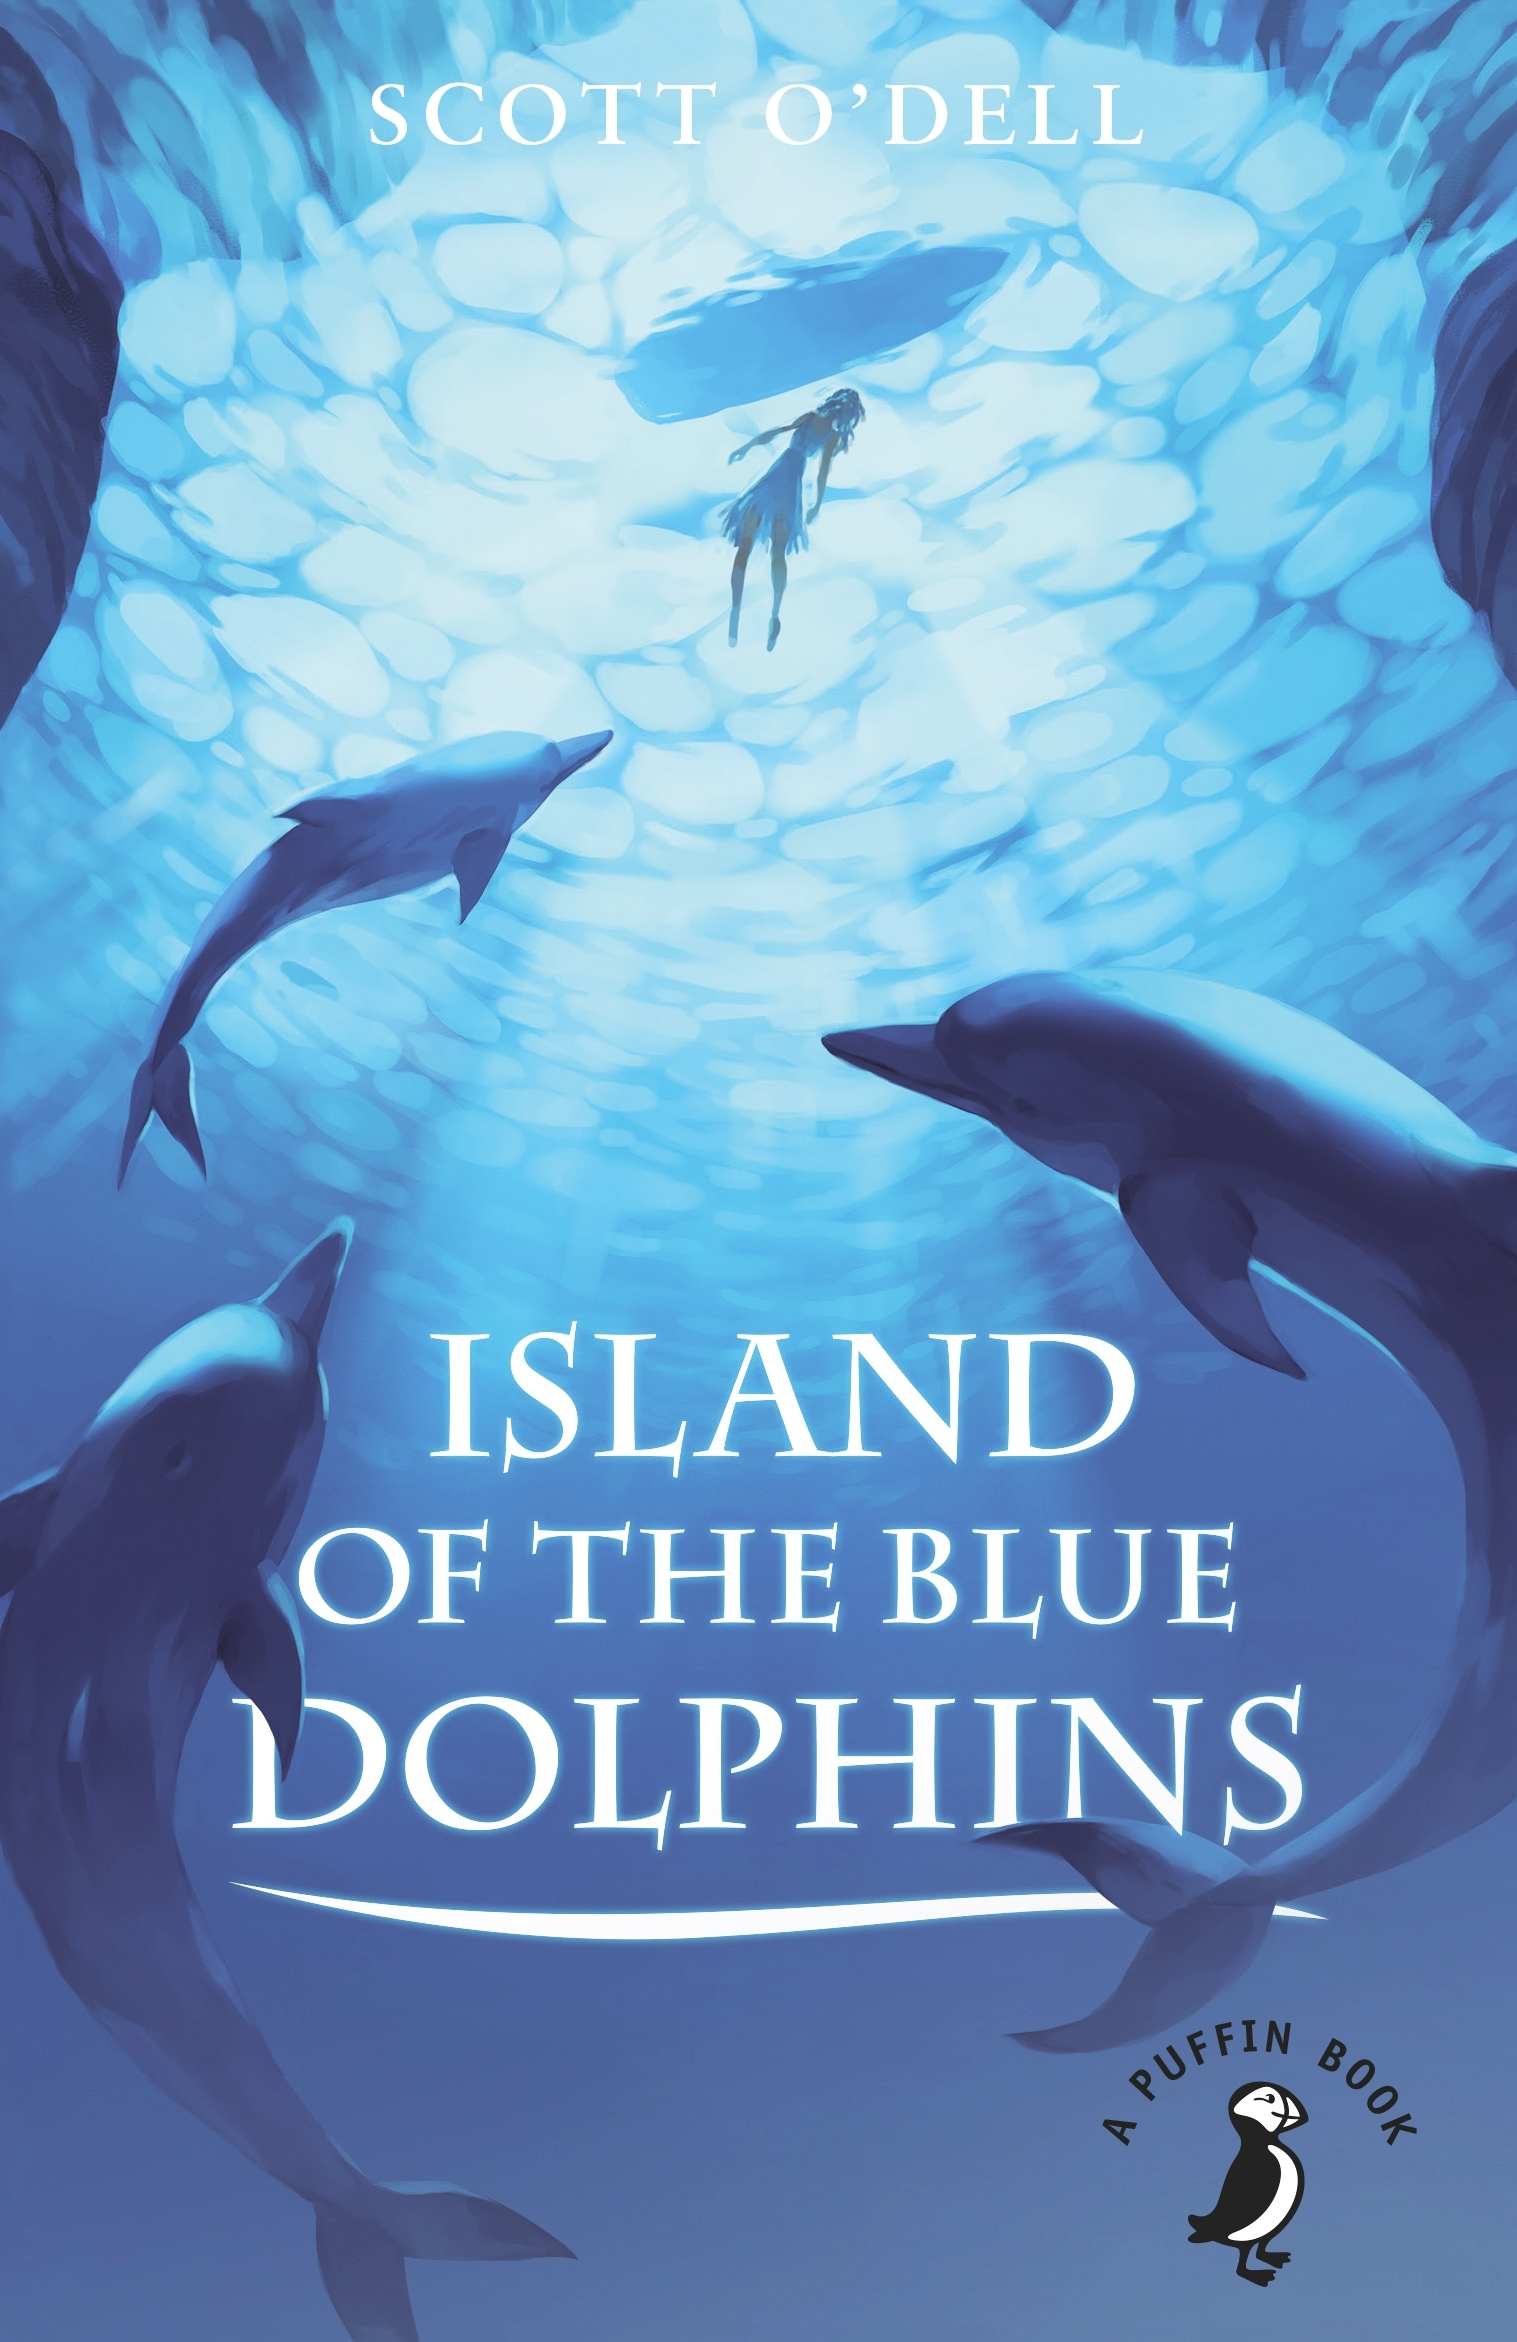 Island Of The Blue Dolphins by Scott O'Dell - Penguin ...